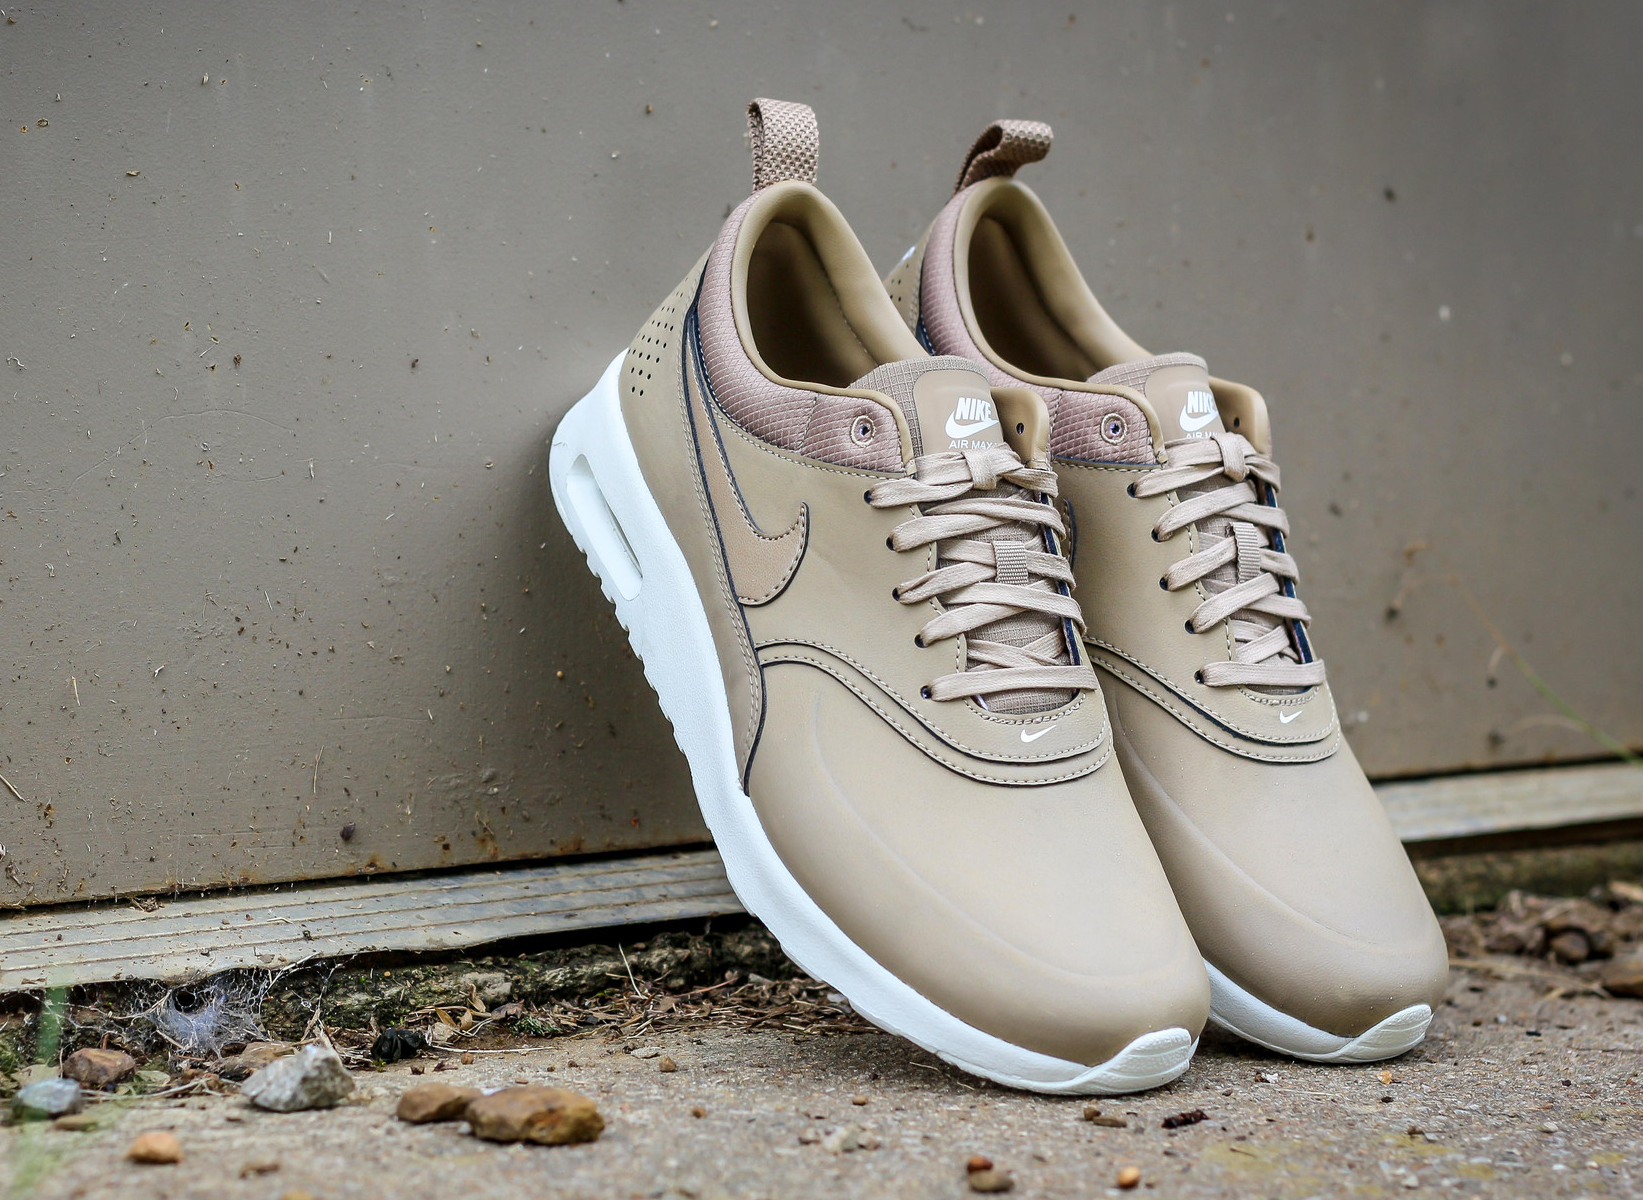 new style 8078a 0bea9 Nike Air Max Thea Desert Camo  Sneakers-actus